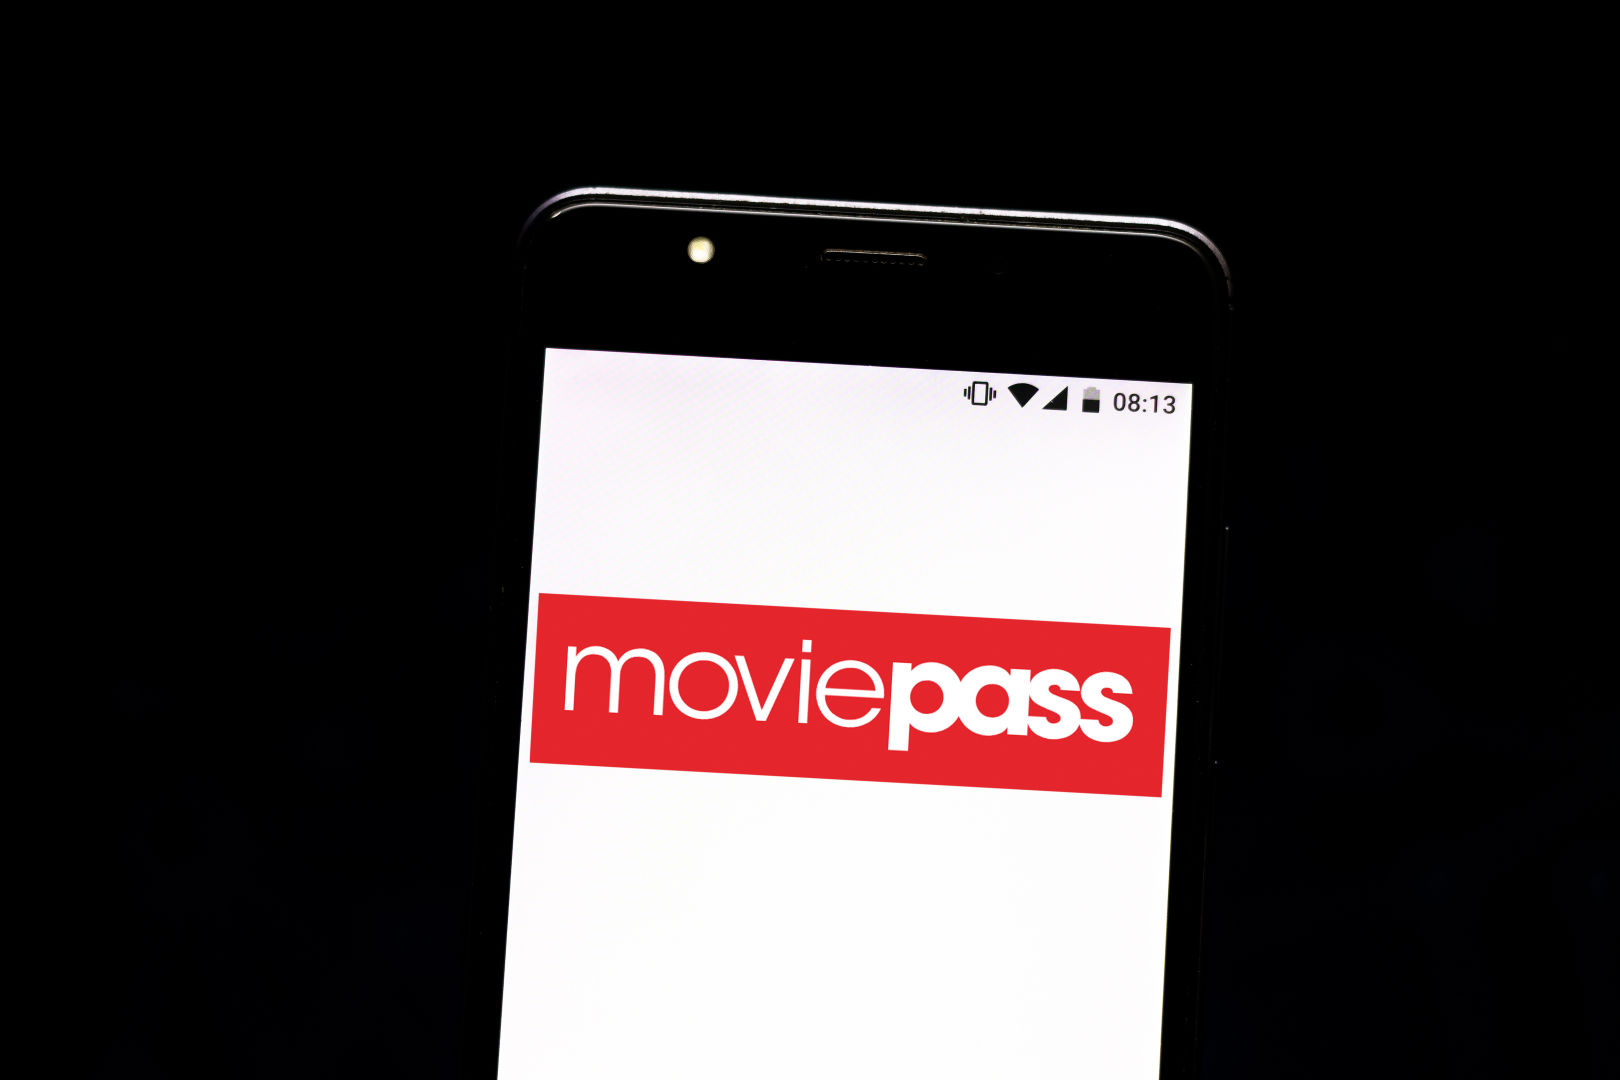 MoviePass Shuts Down Its Service After Years Of Floundering